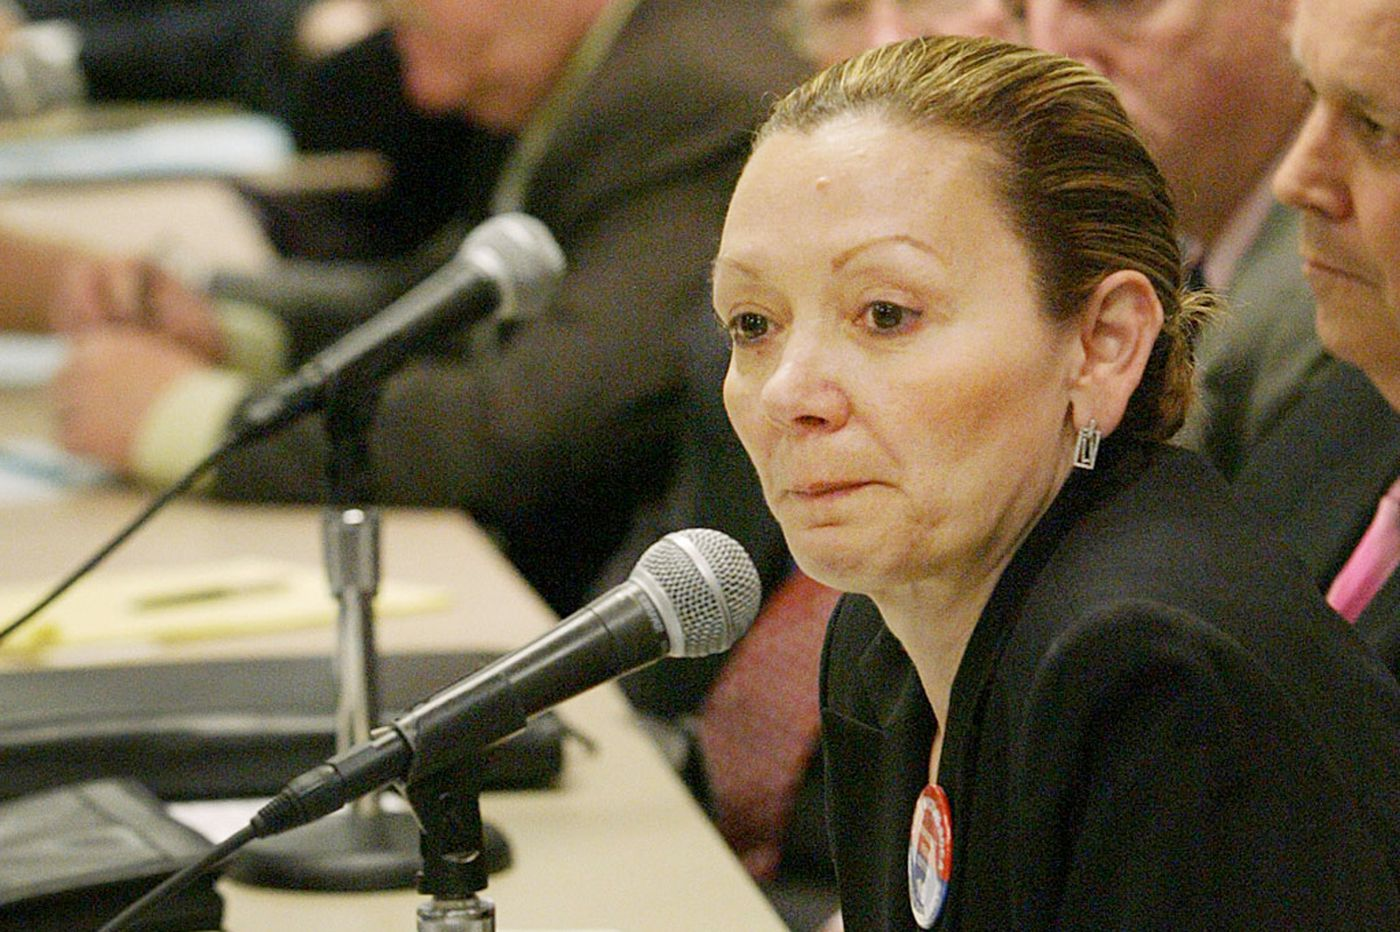 Philly Judge Angeles Roca found guilty of ethics violation